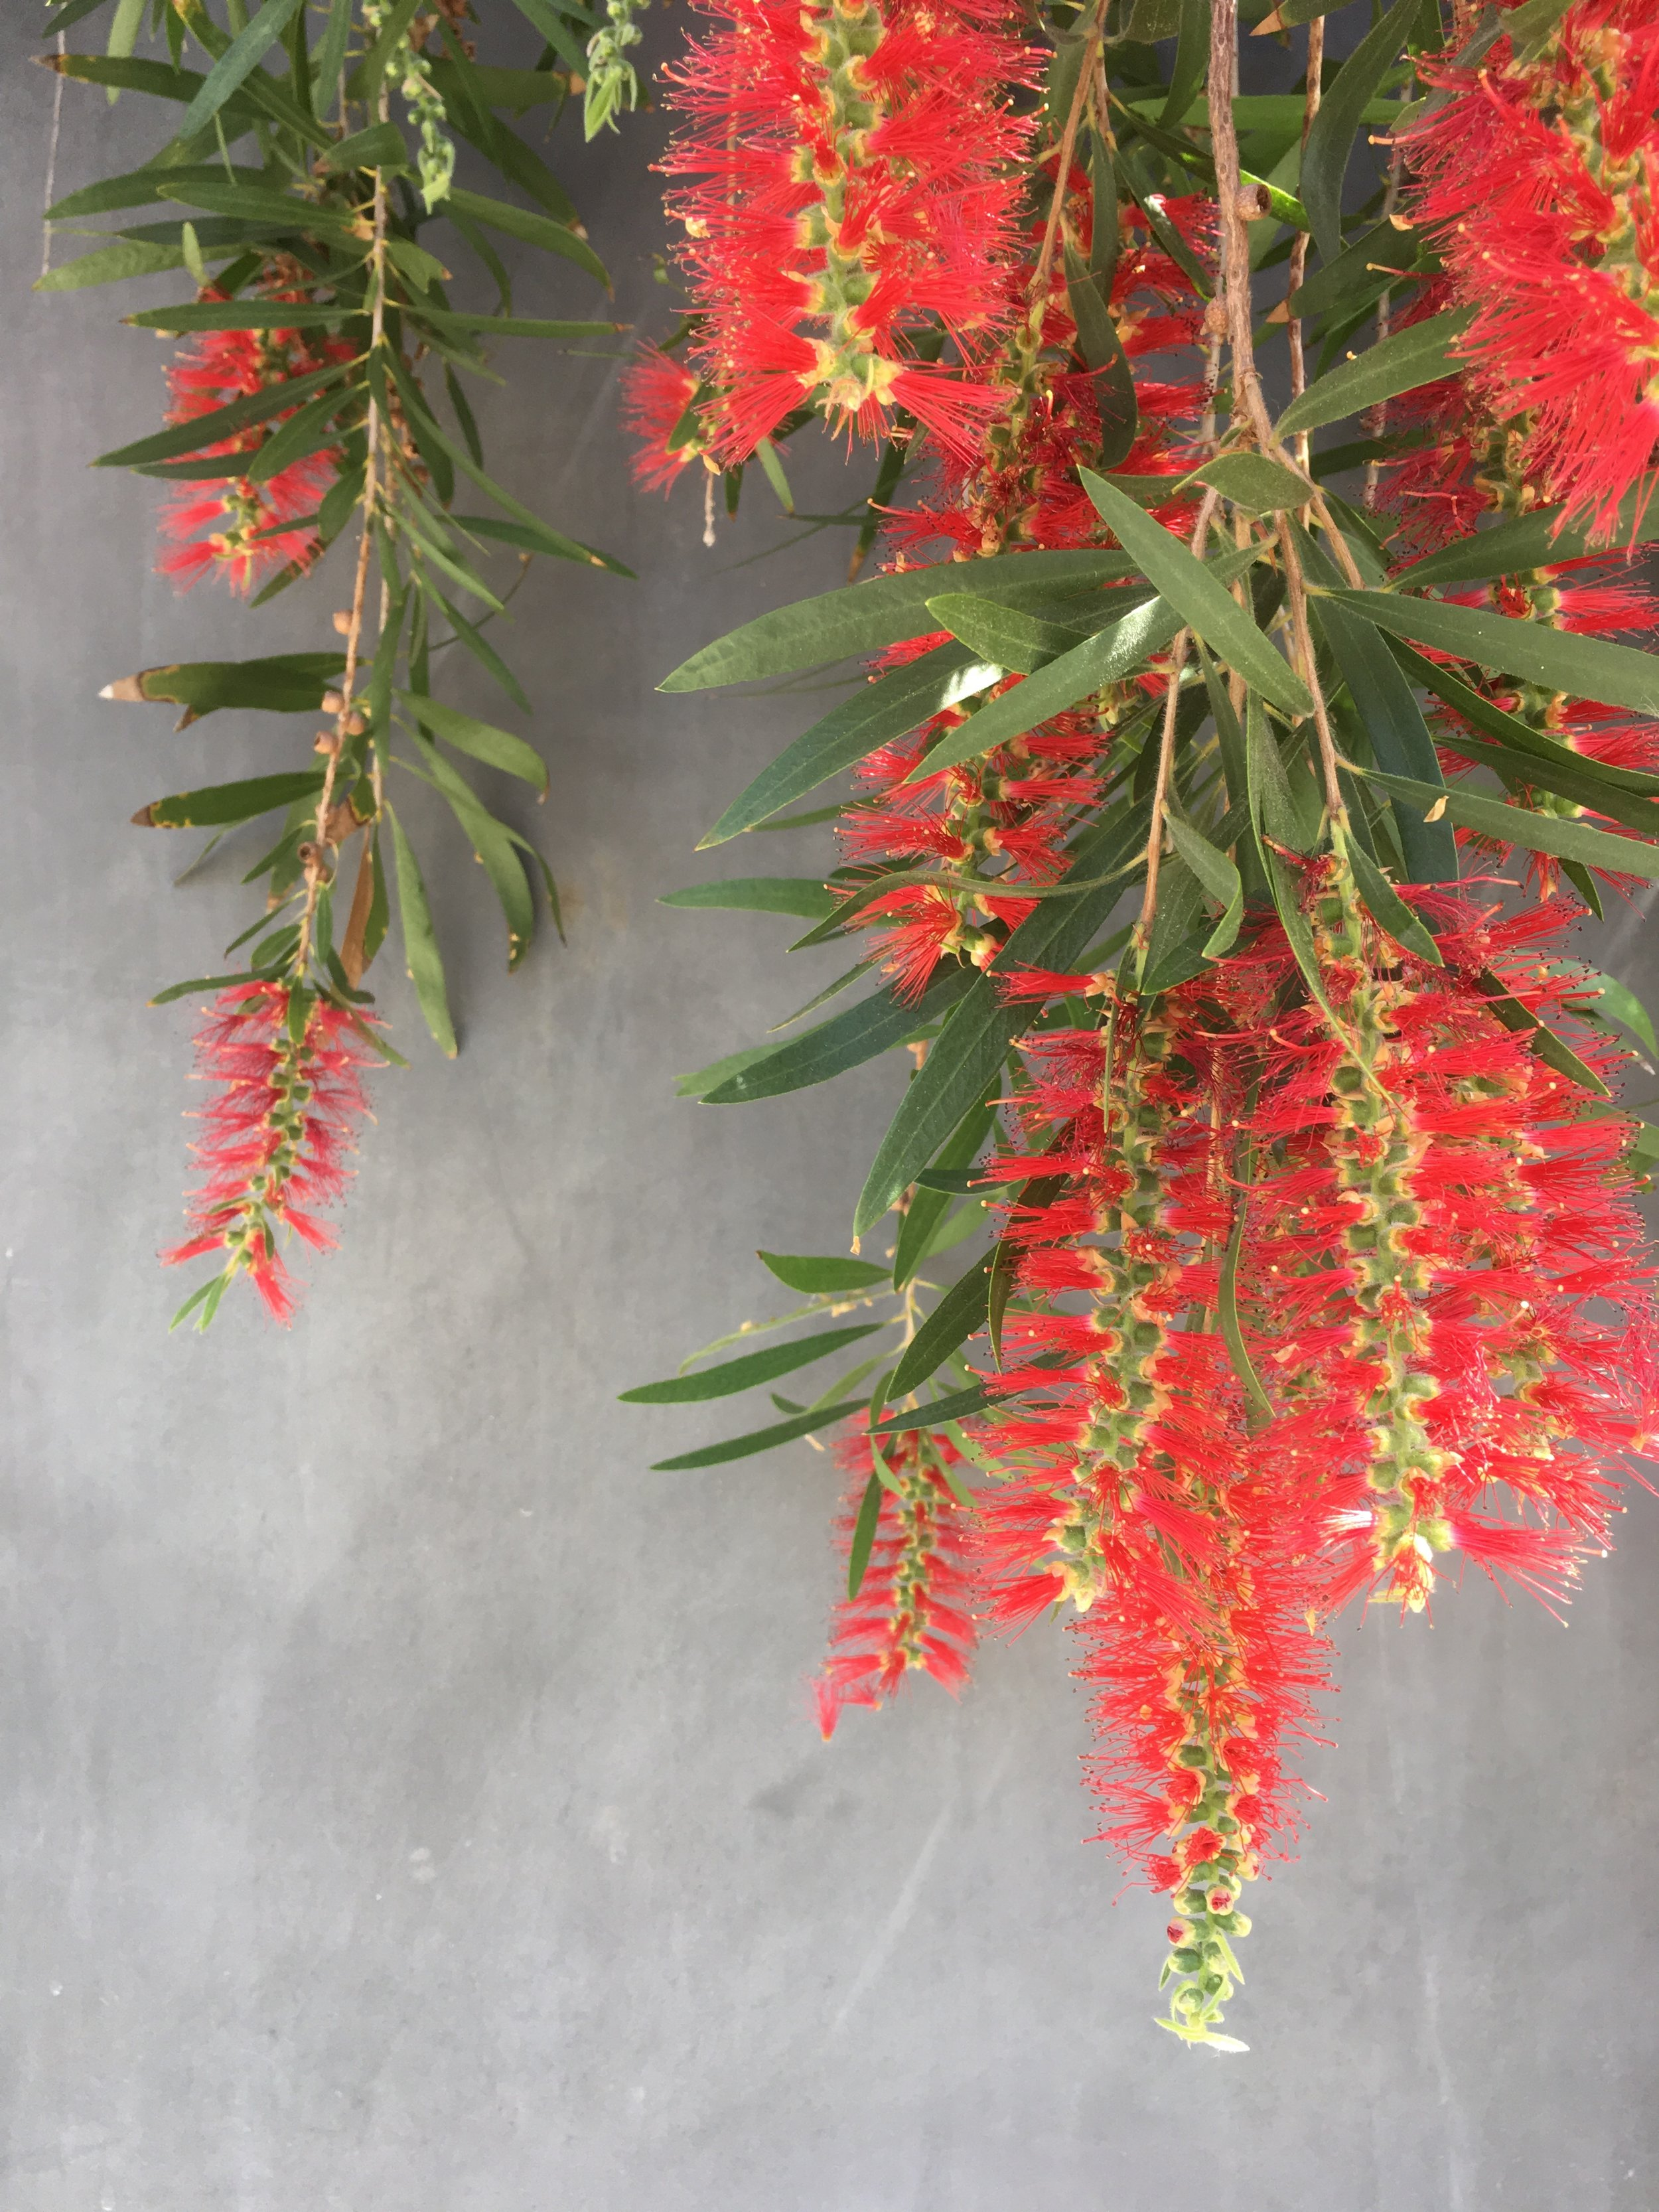 six bottle brush tree flowers and leaves dangling in front of a gray wall